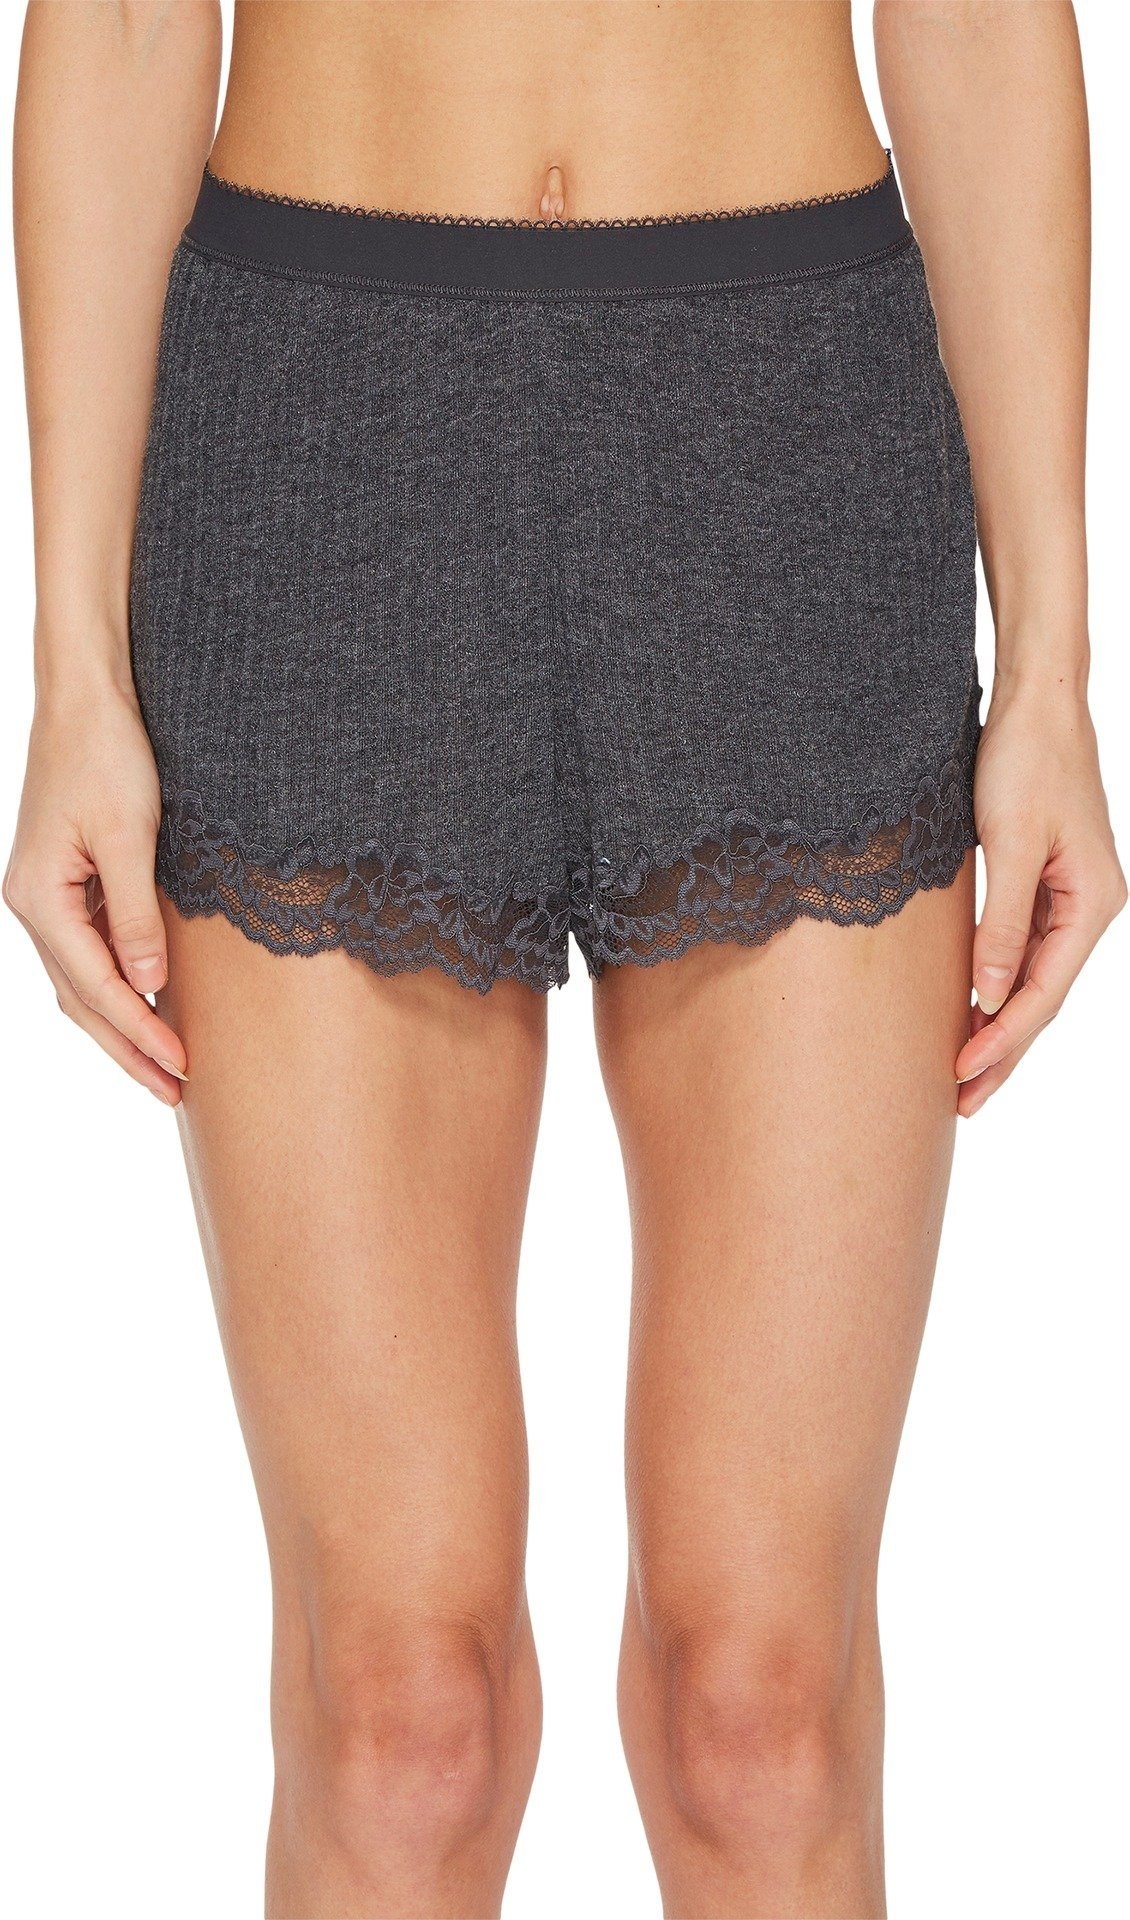 Stella McCartney Women's Lily Blushing Short Brief Grey Marl Large